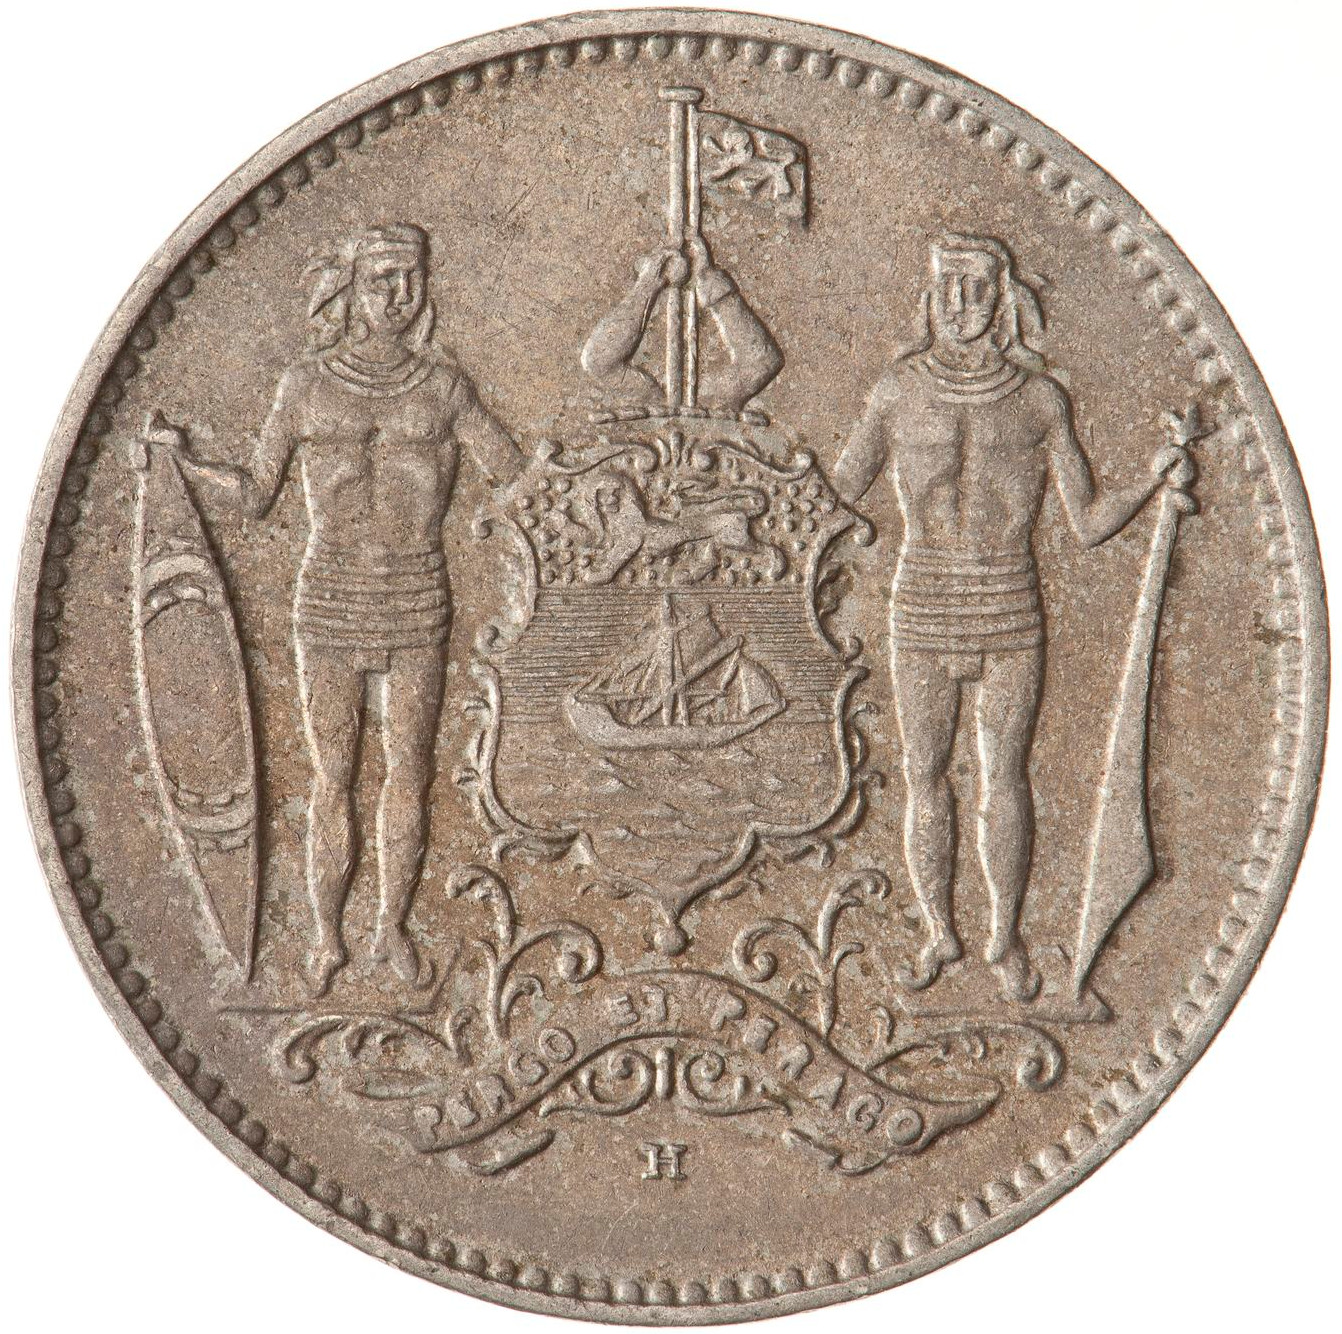 One Cent 1935: Photo Coin - 1 Cent, North Borneo, 1935